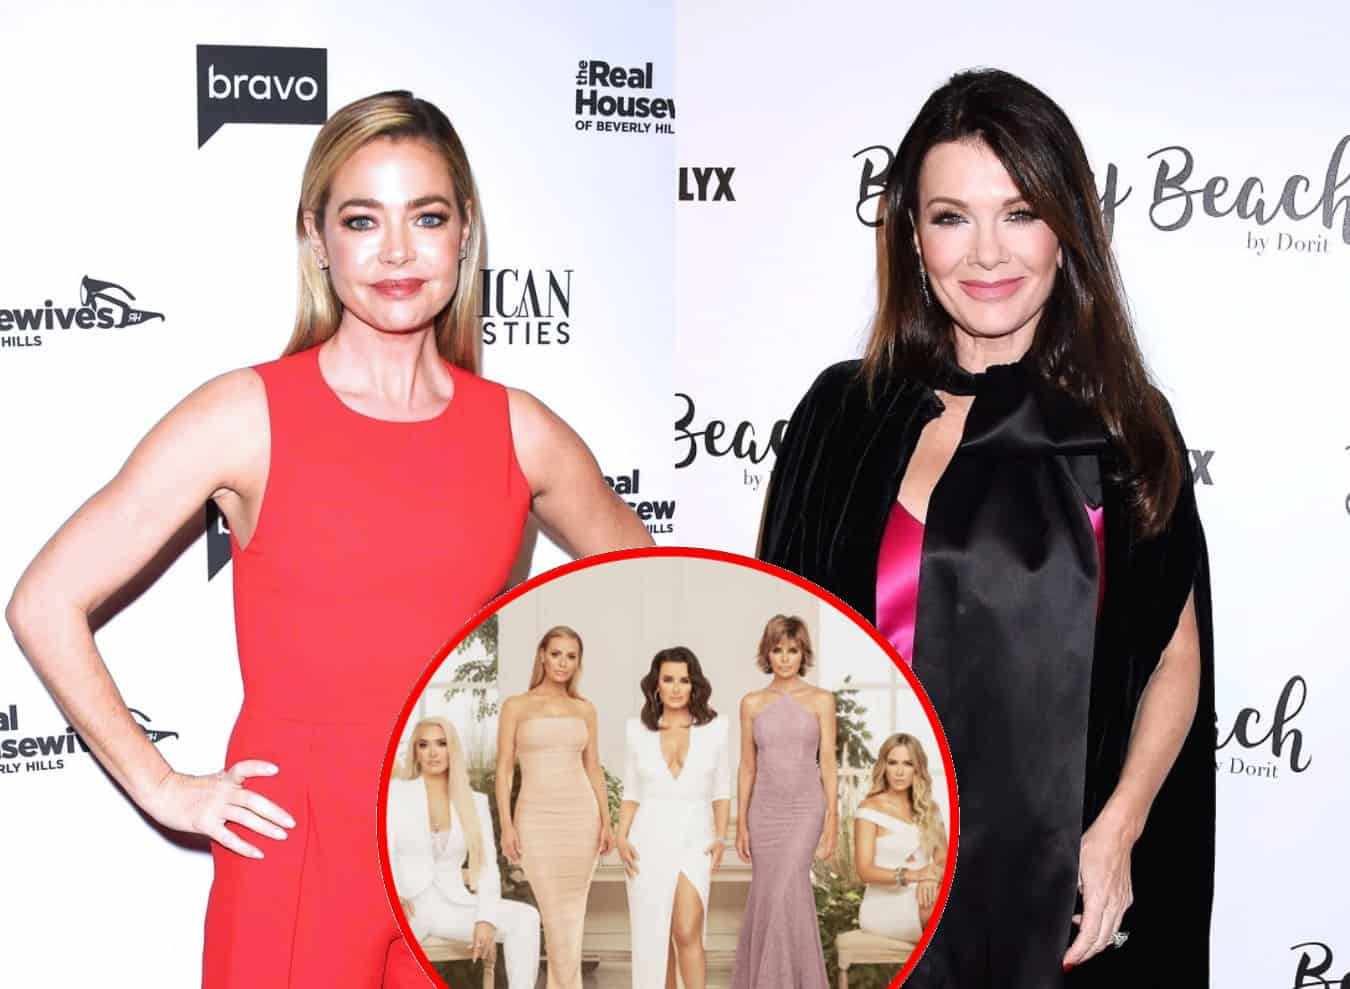 REPORT: Denise Richards Now Gets Why Lisa Vanderpump Isn't Friends With RHOBH Cast, Is She Open to Making Amends With Lisa Rinna Amid Feud?